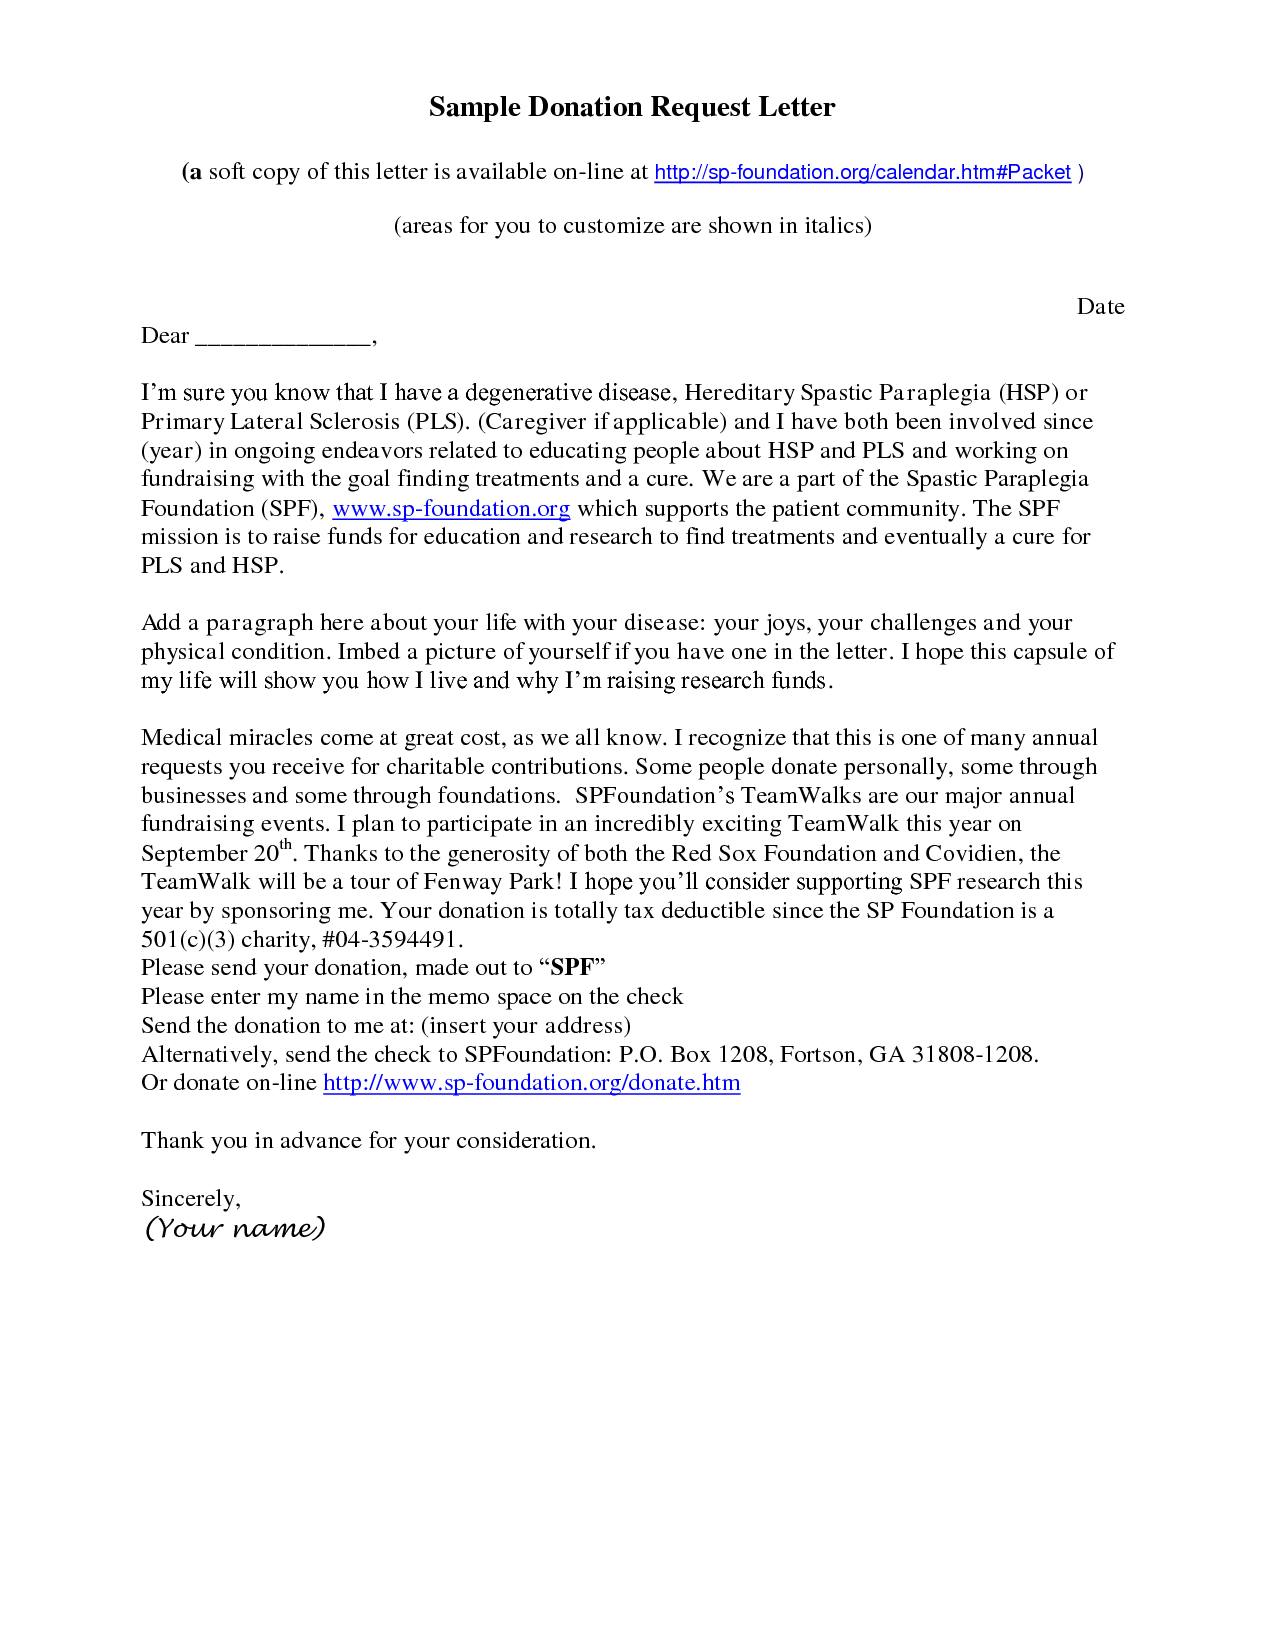 Sponsorship Letter Template for Donations - How to Write A solicitation Letter for Donations Choice Image